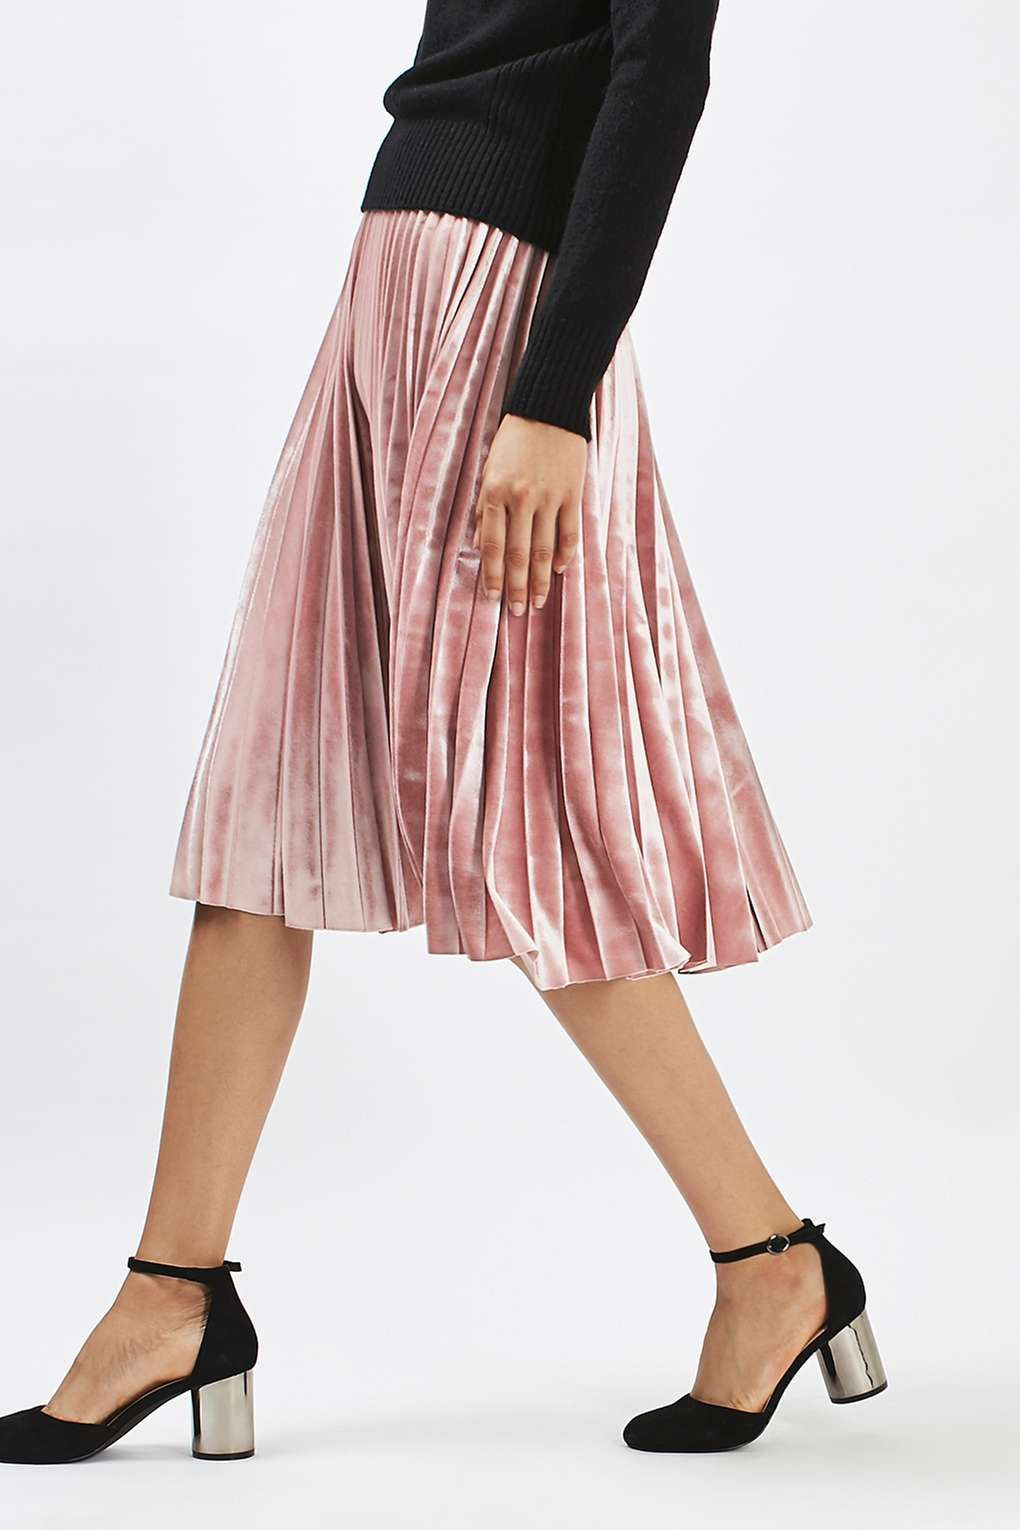 05b942c4d23f6e Carousel Image 2 Pleated Skirt Outfit, Metallic Pleated Skirt, Skirt Outfits,  Dress Skirt